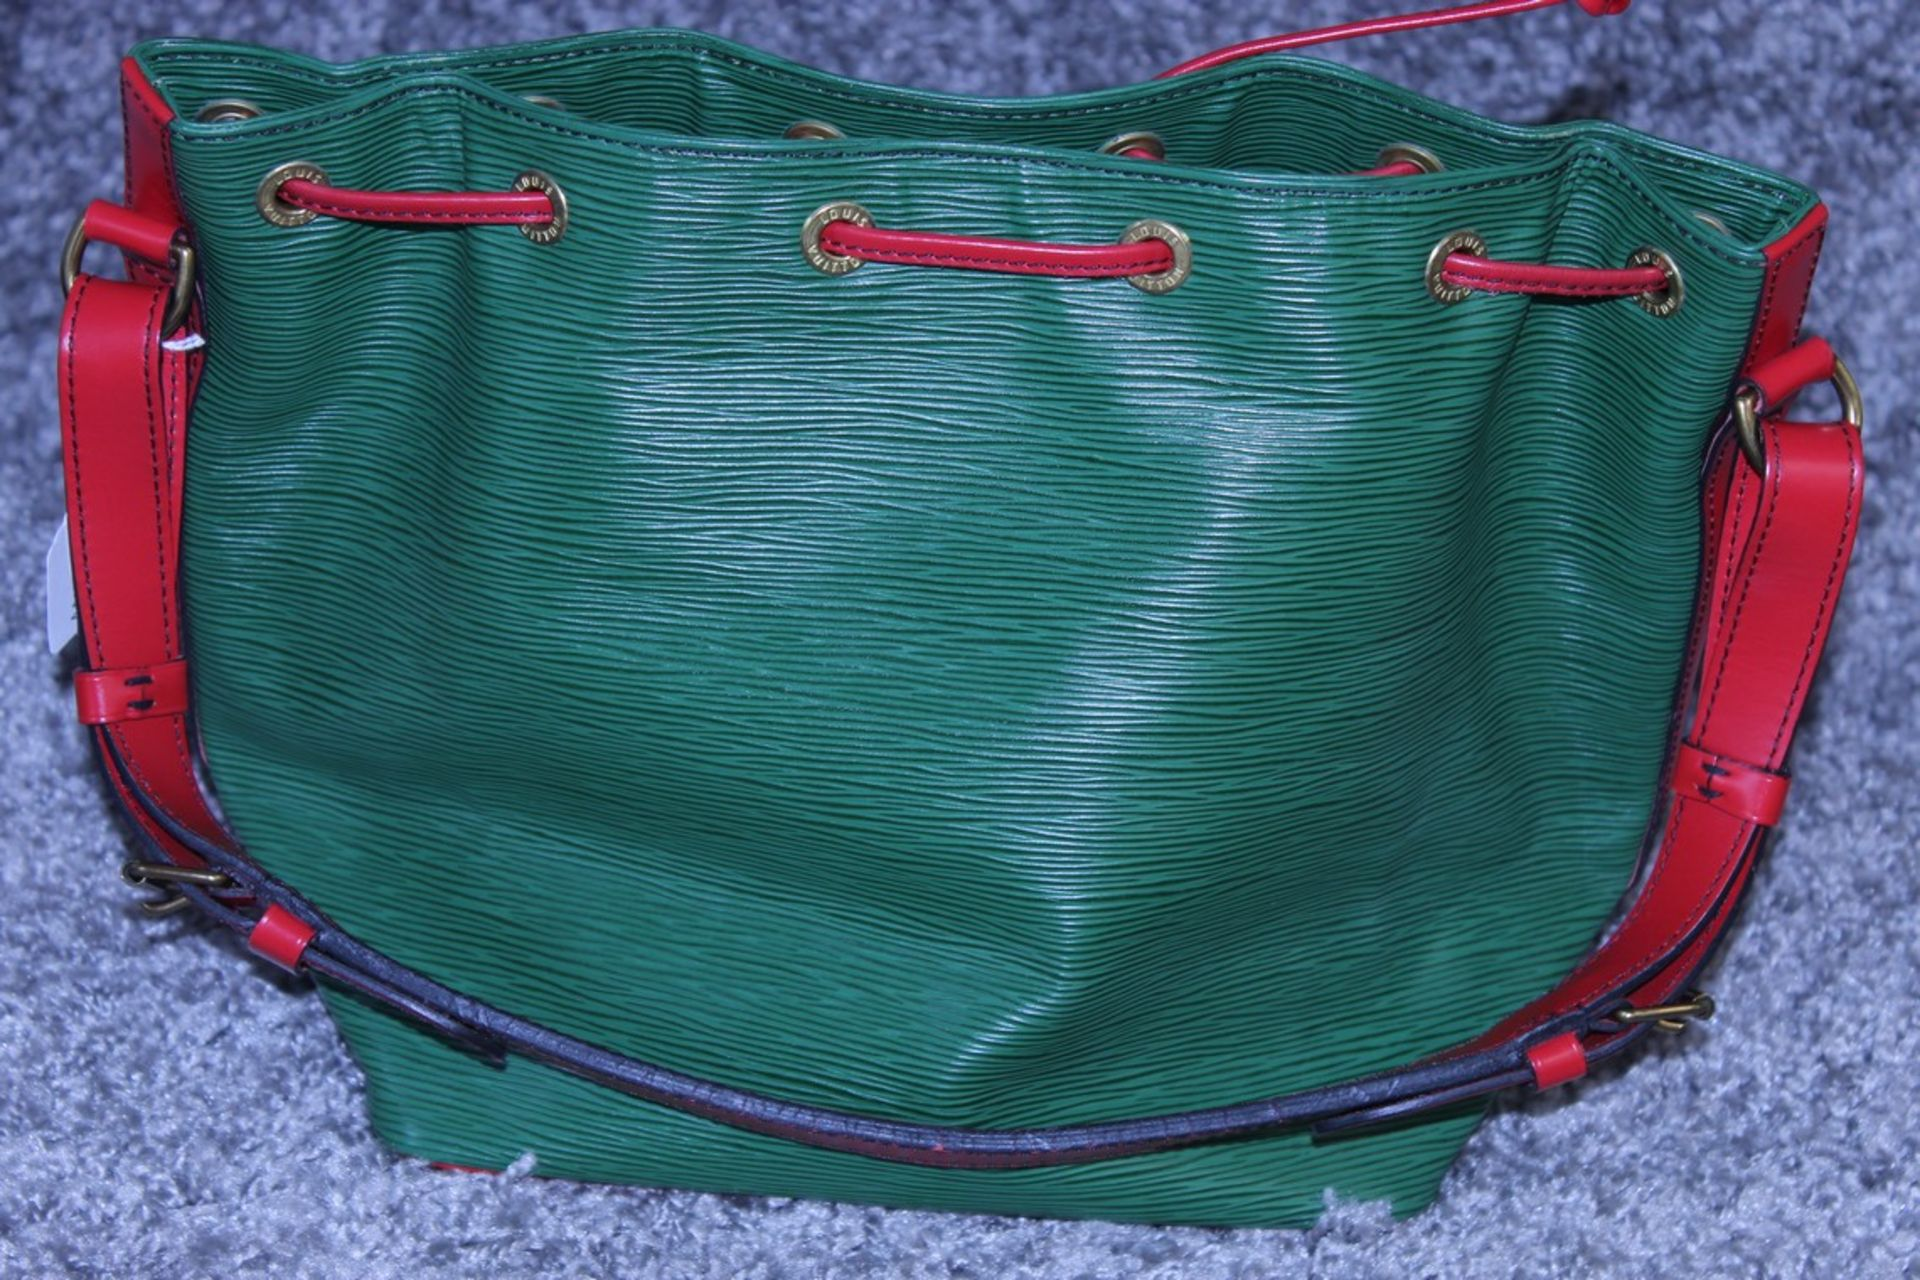 RRP £1200 Louis Vuitton Noe Bicolour Black Stitching Shoulder Bag In Green/Red Epi Calf Leather With - Image 2 of 3